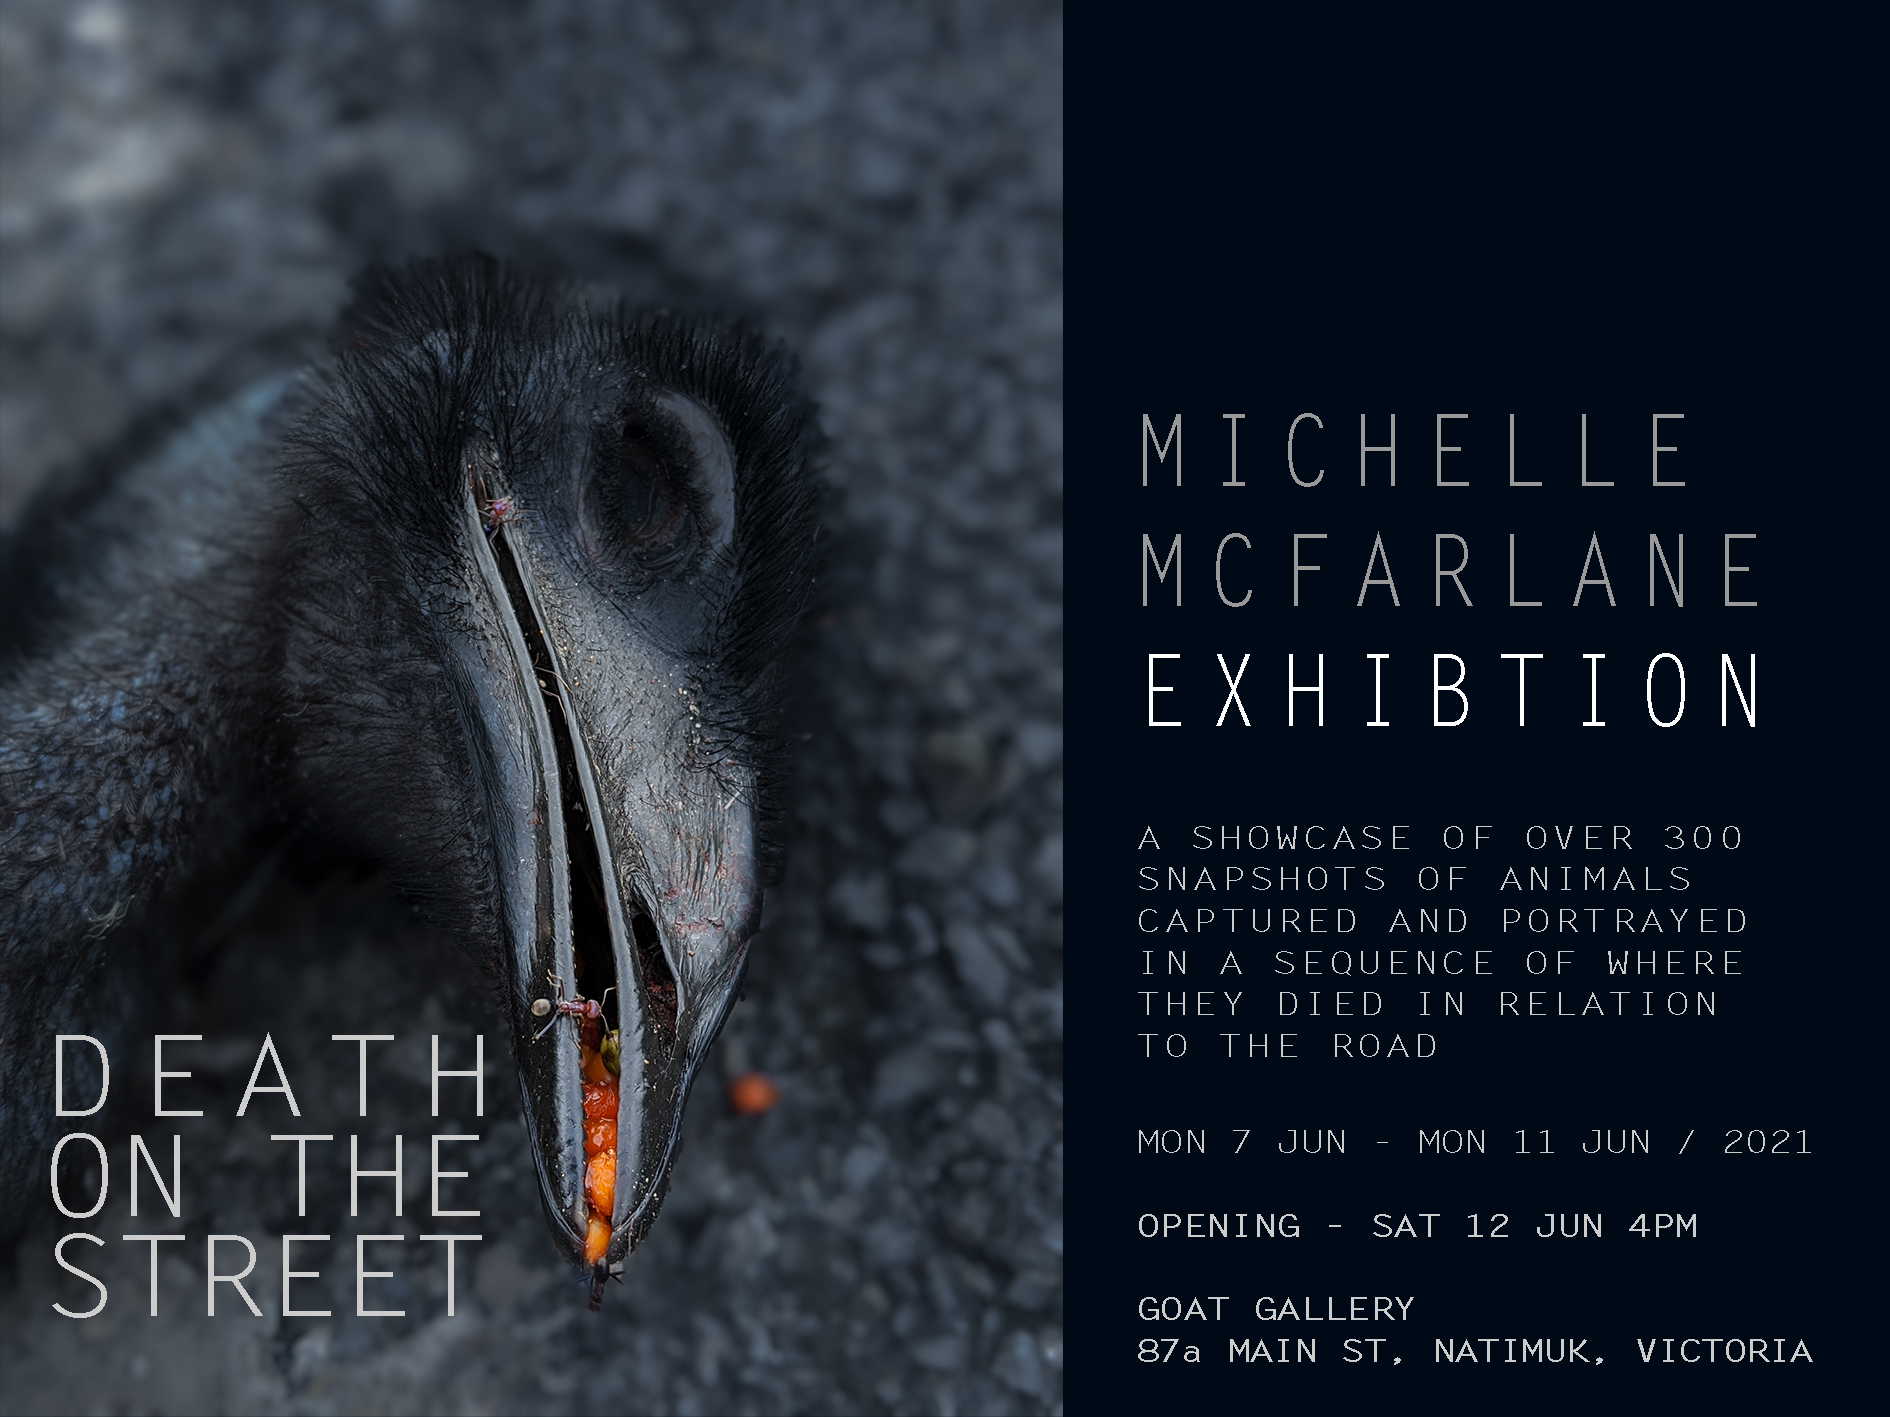 'Death on the Street' Upcoming Exhibition launch at Goat Gallery